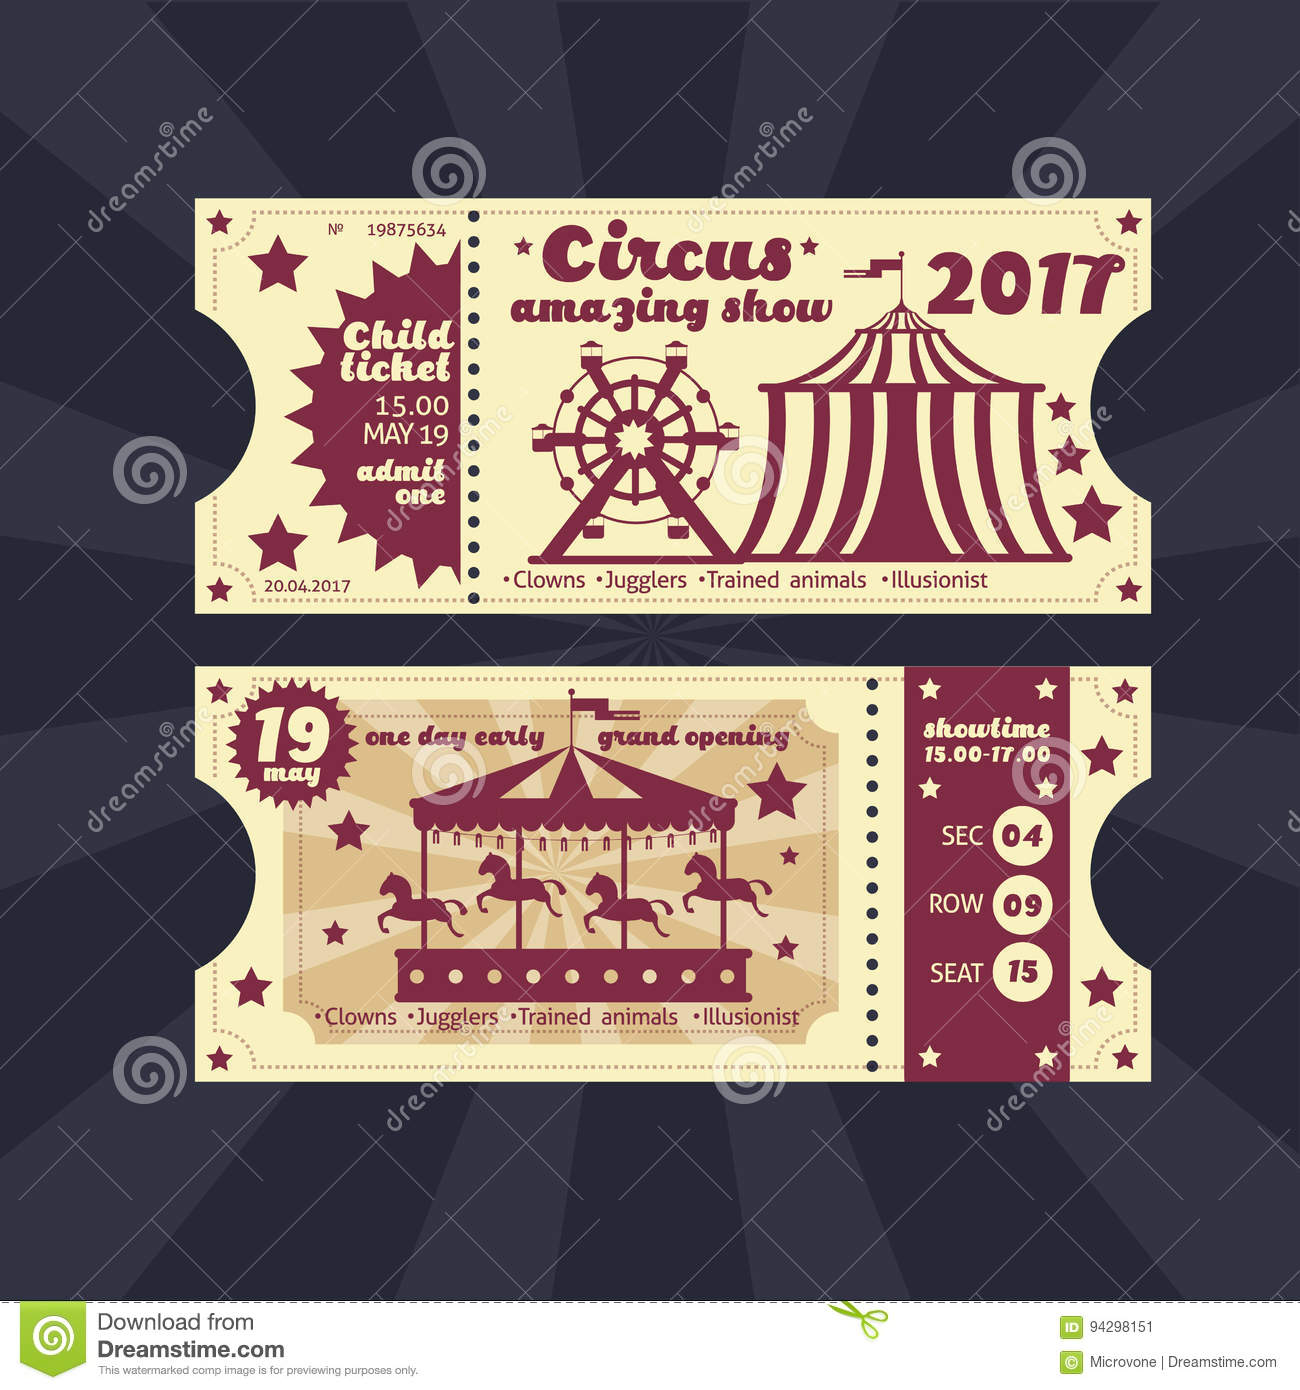 Circus Magic Show Ticket Vector Vintage Design Stock Vector ...